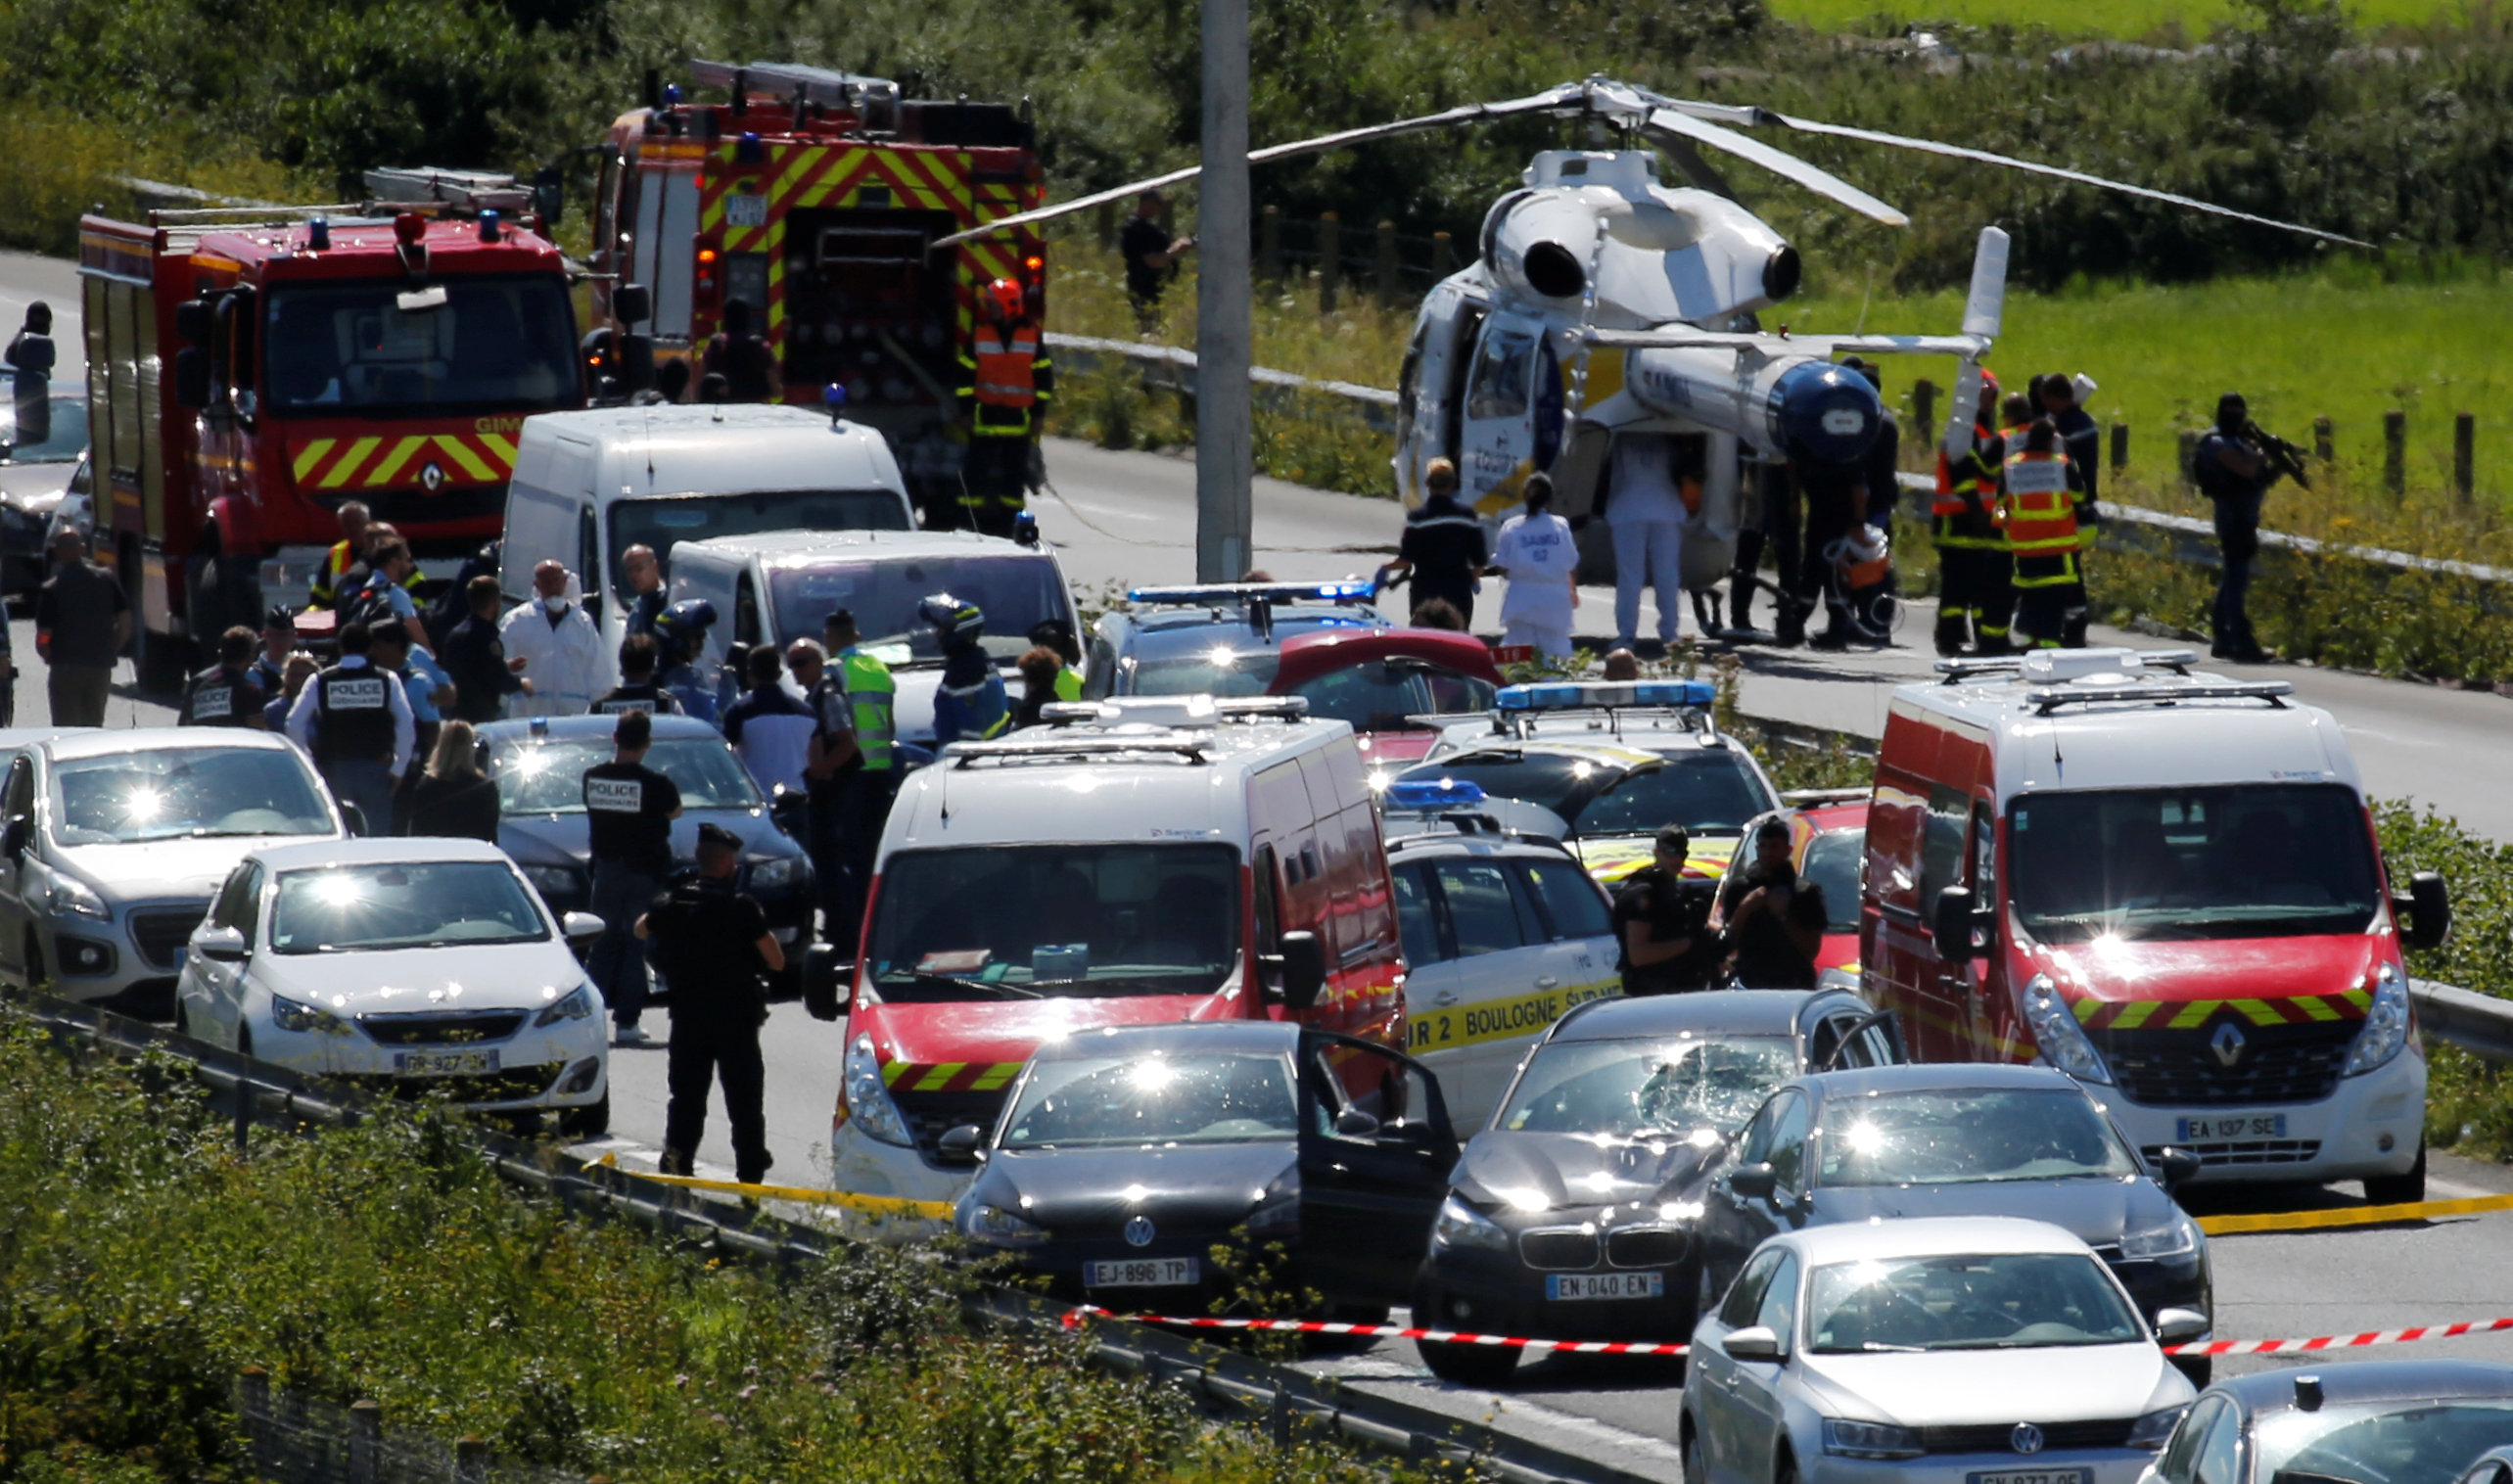 Police and rescue forces are seen on the scene where the man suspected of ramming a car into a group of soldiers on Wednesday in the Paris suburb of Levallois-Perret was shot and arrested on the A16 motorway, near Marquise, France, August 9, 2017. (REUTERS/Pascal Rossignol)